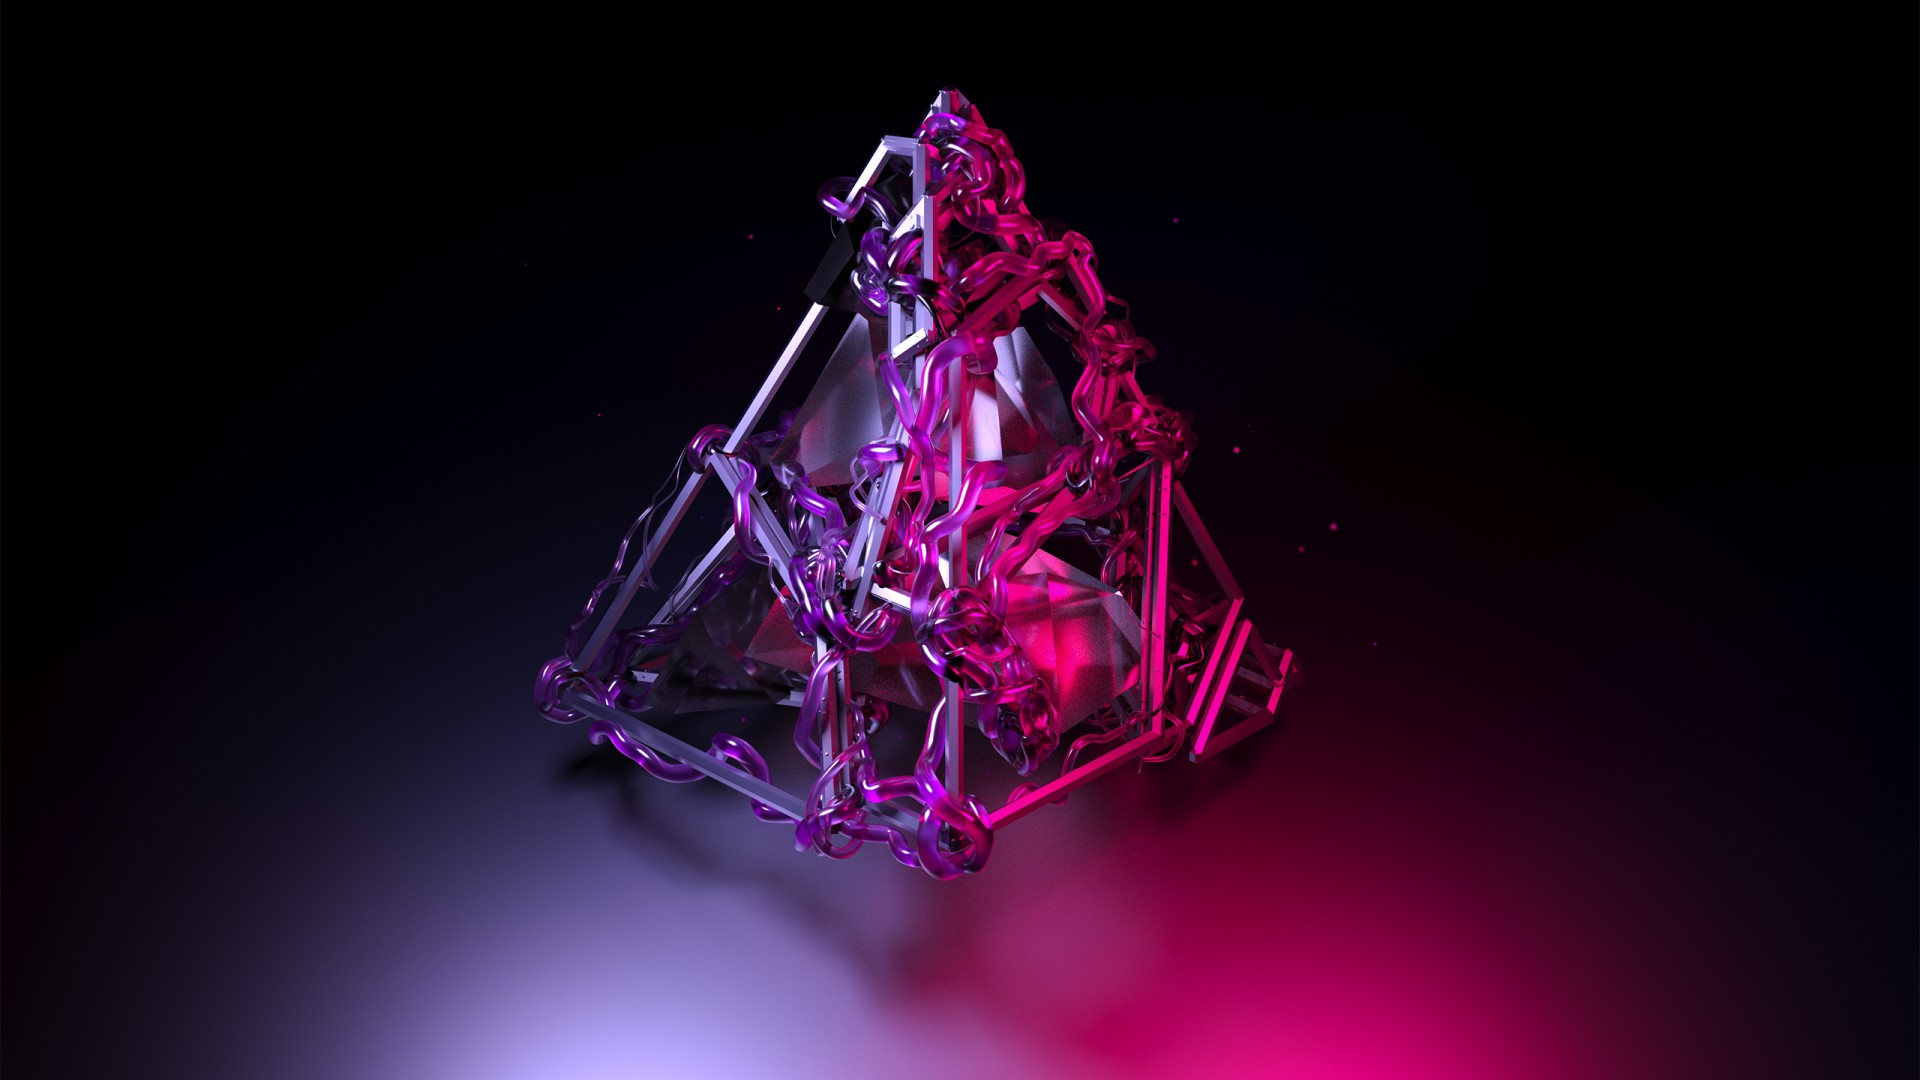 Wallpaper Pyramid, 3D, Violet, HD, OS #16382